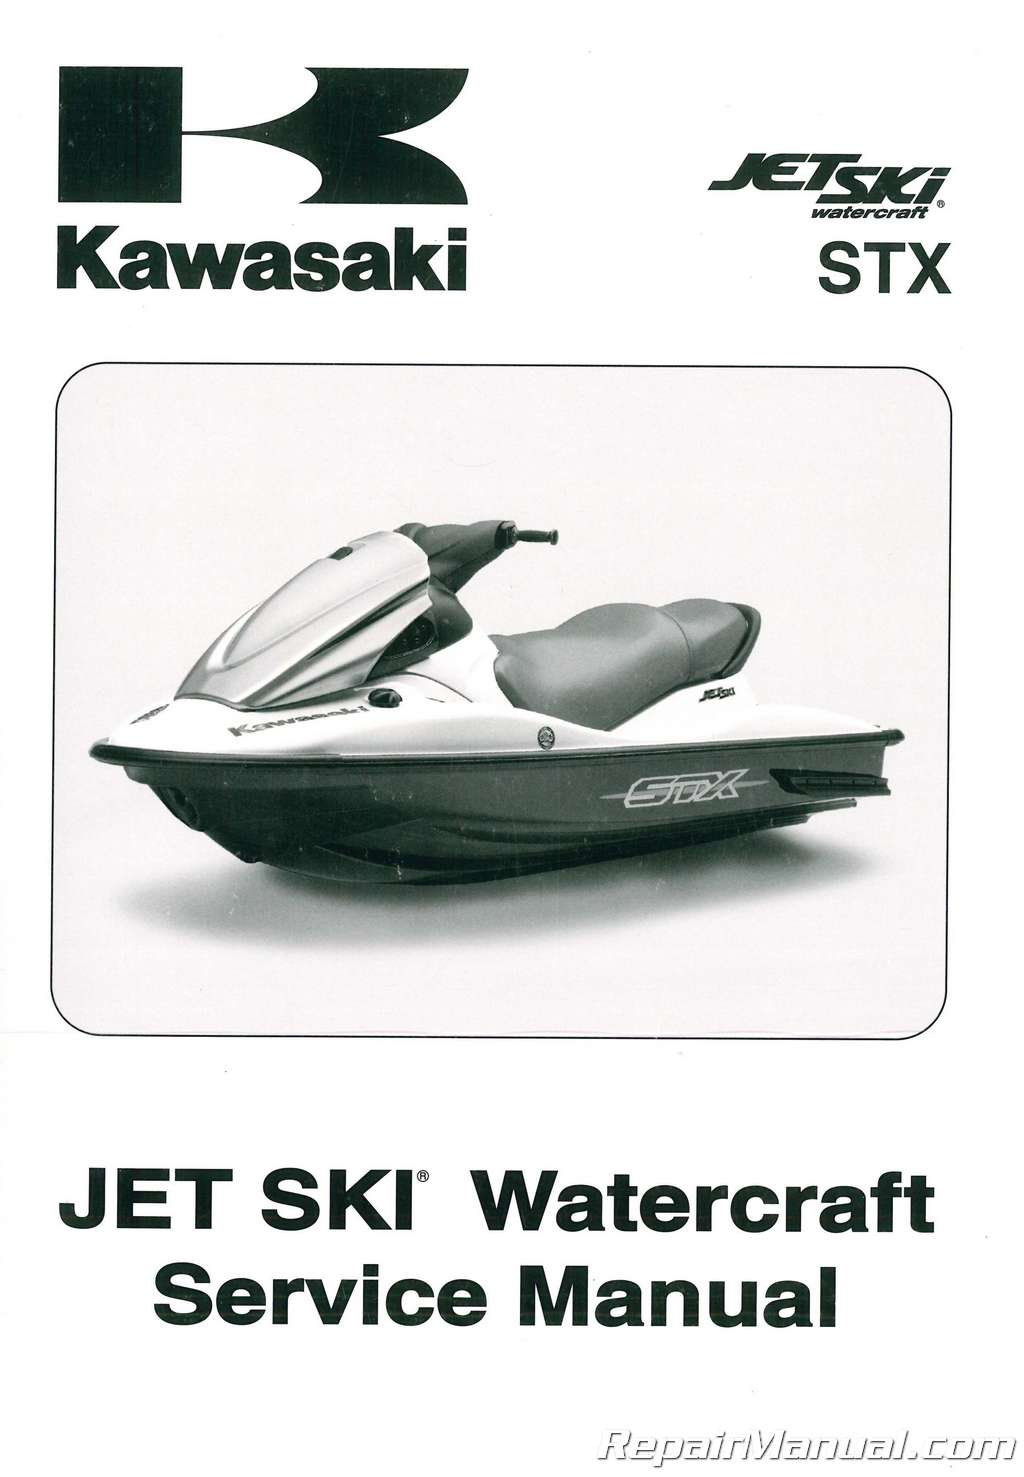 2009 kawasaki jt1500d stx jet ski service manual rh repairmanual com jet  ski repair manuals free kawasaki jet ski repair manual free download